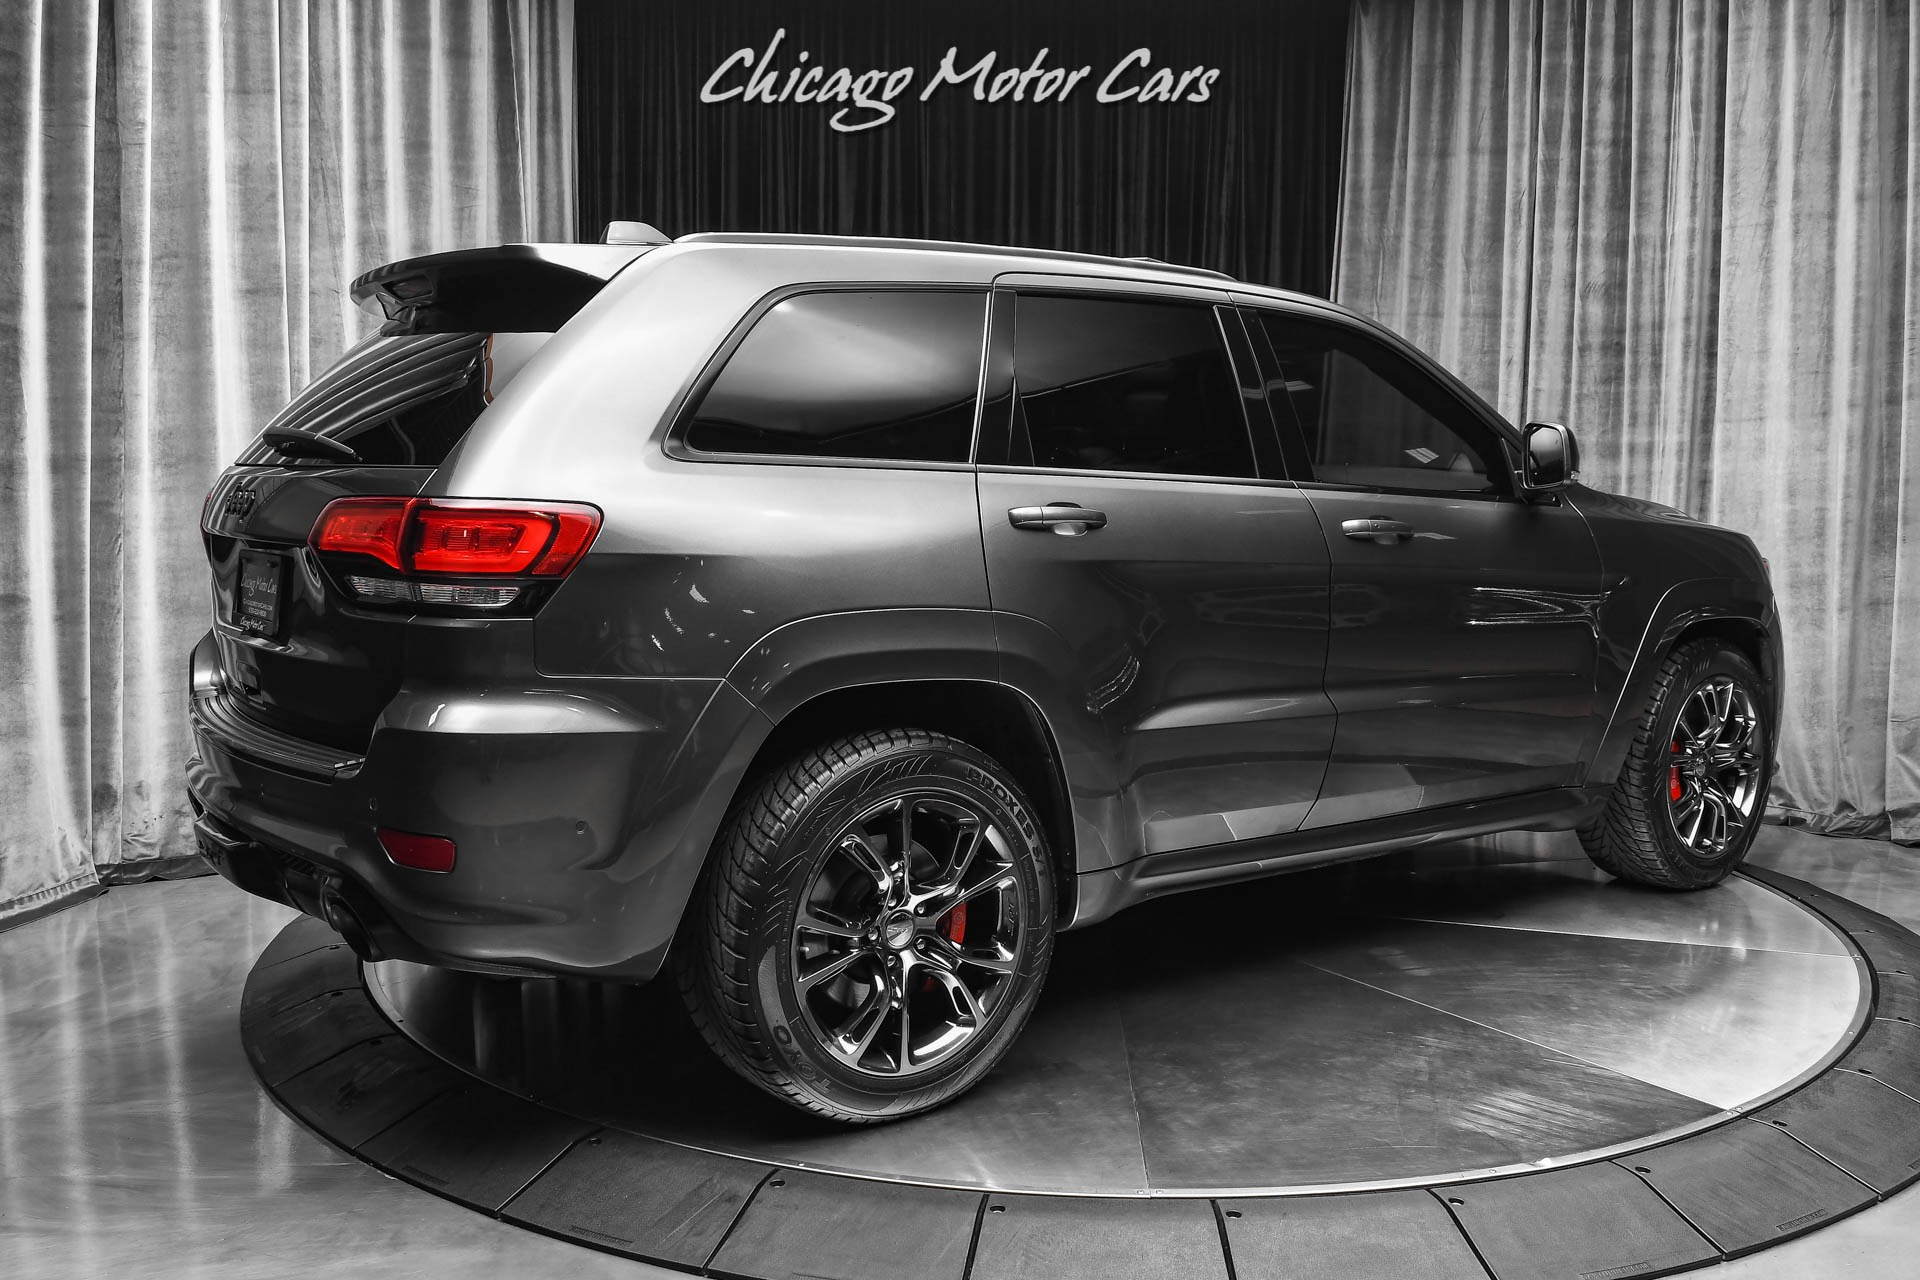 Used-2019-Jeep-Grand-Cherokee-SRT-SUV-Brembo-Brakes-Navigation-PANORAMIC-Roof